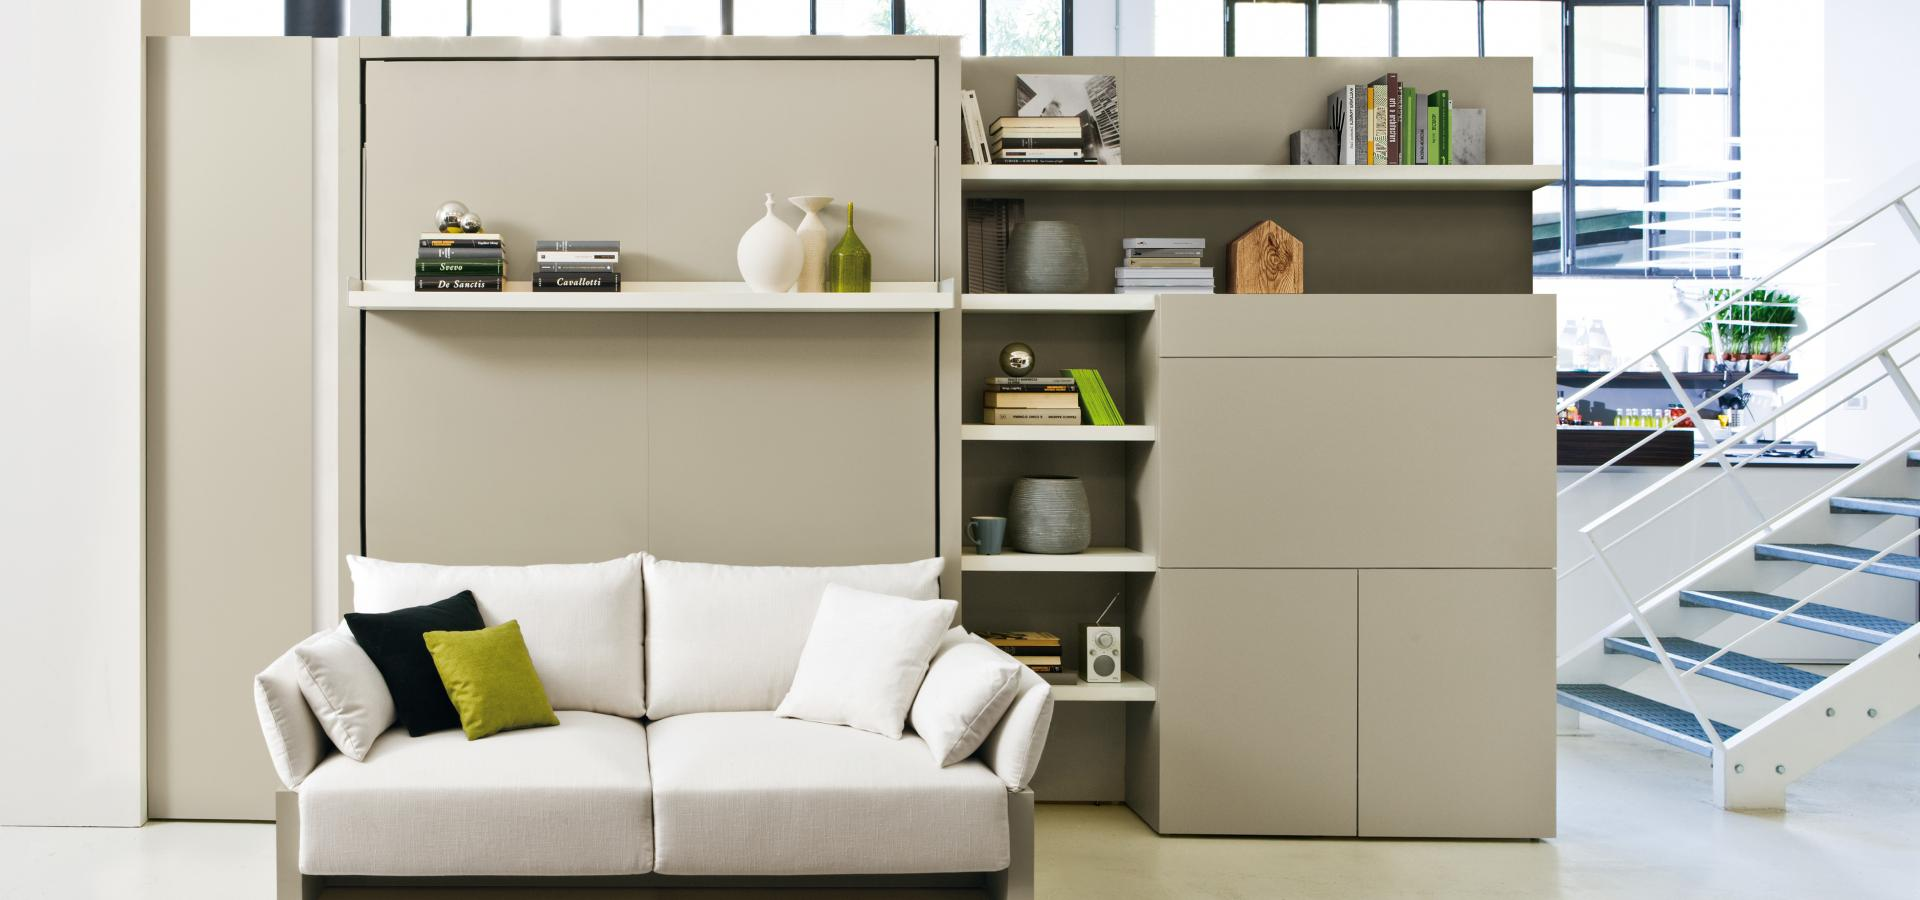 Tilting Double Bed And Sofa With Storage Compartment And Bookshelf Nuovoliola 10 Clei